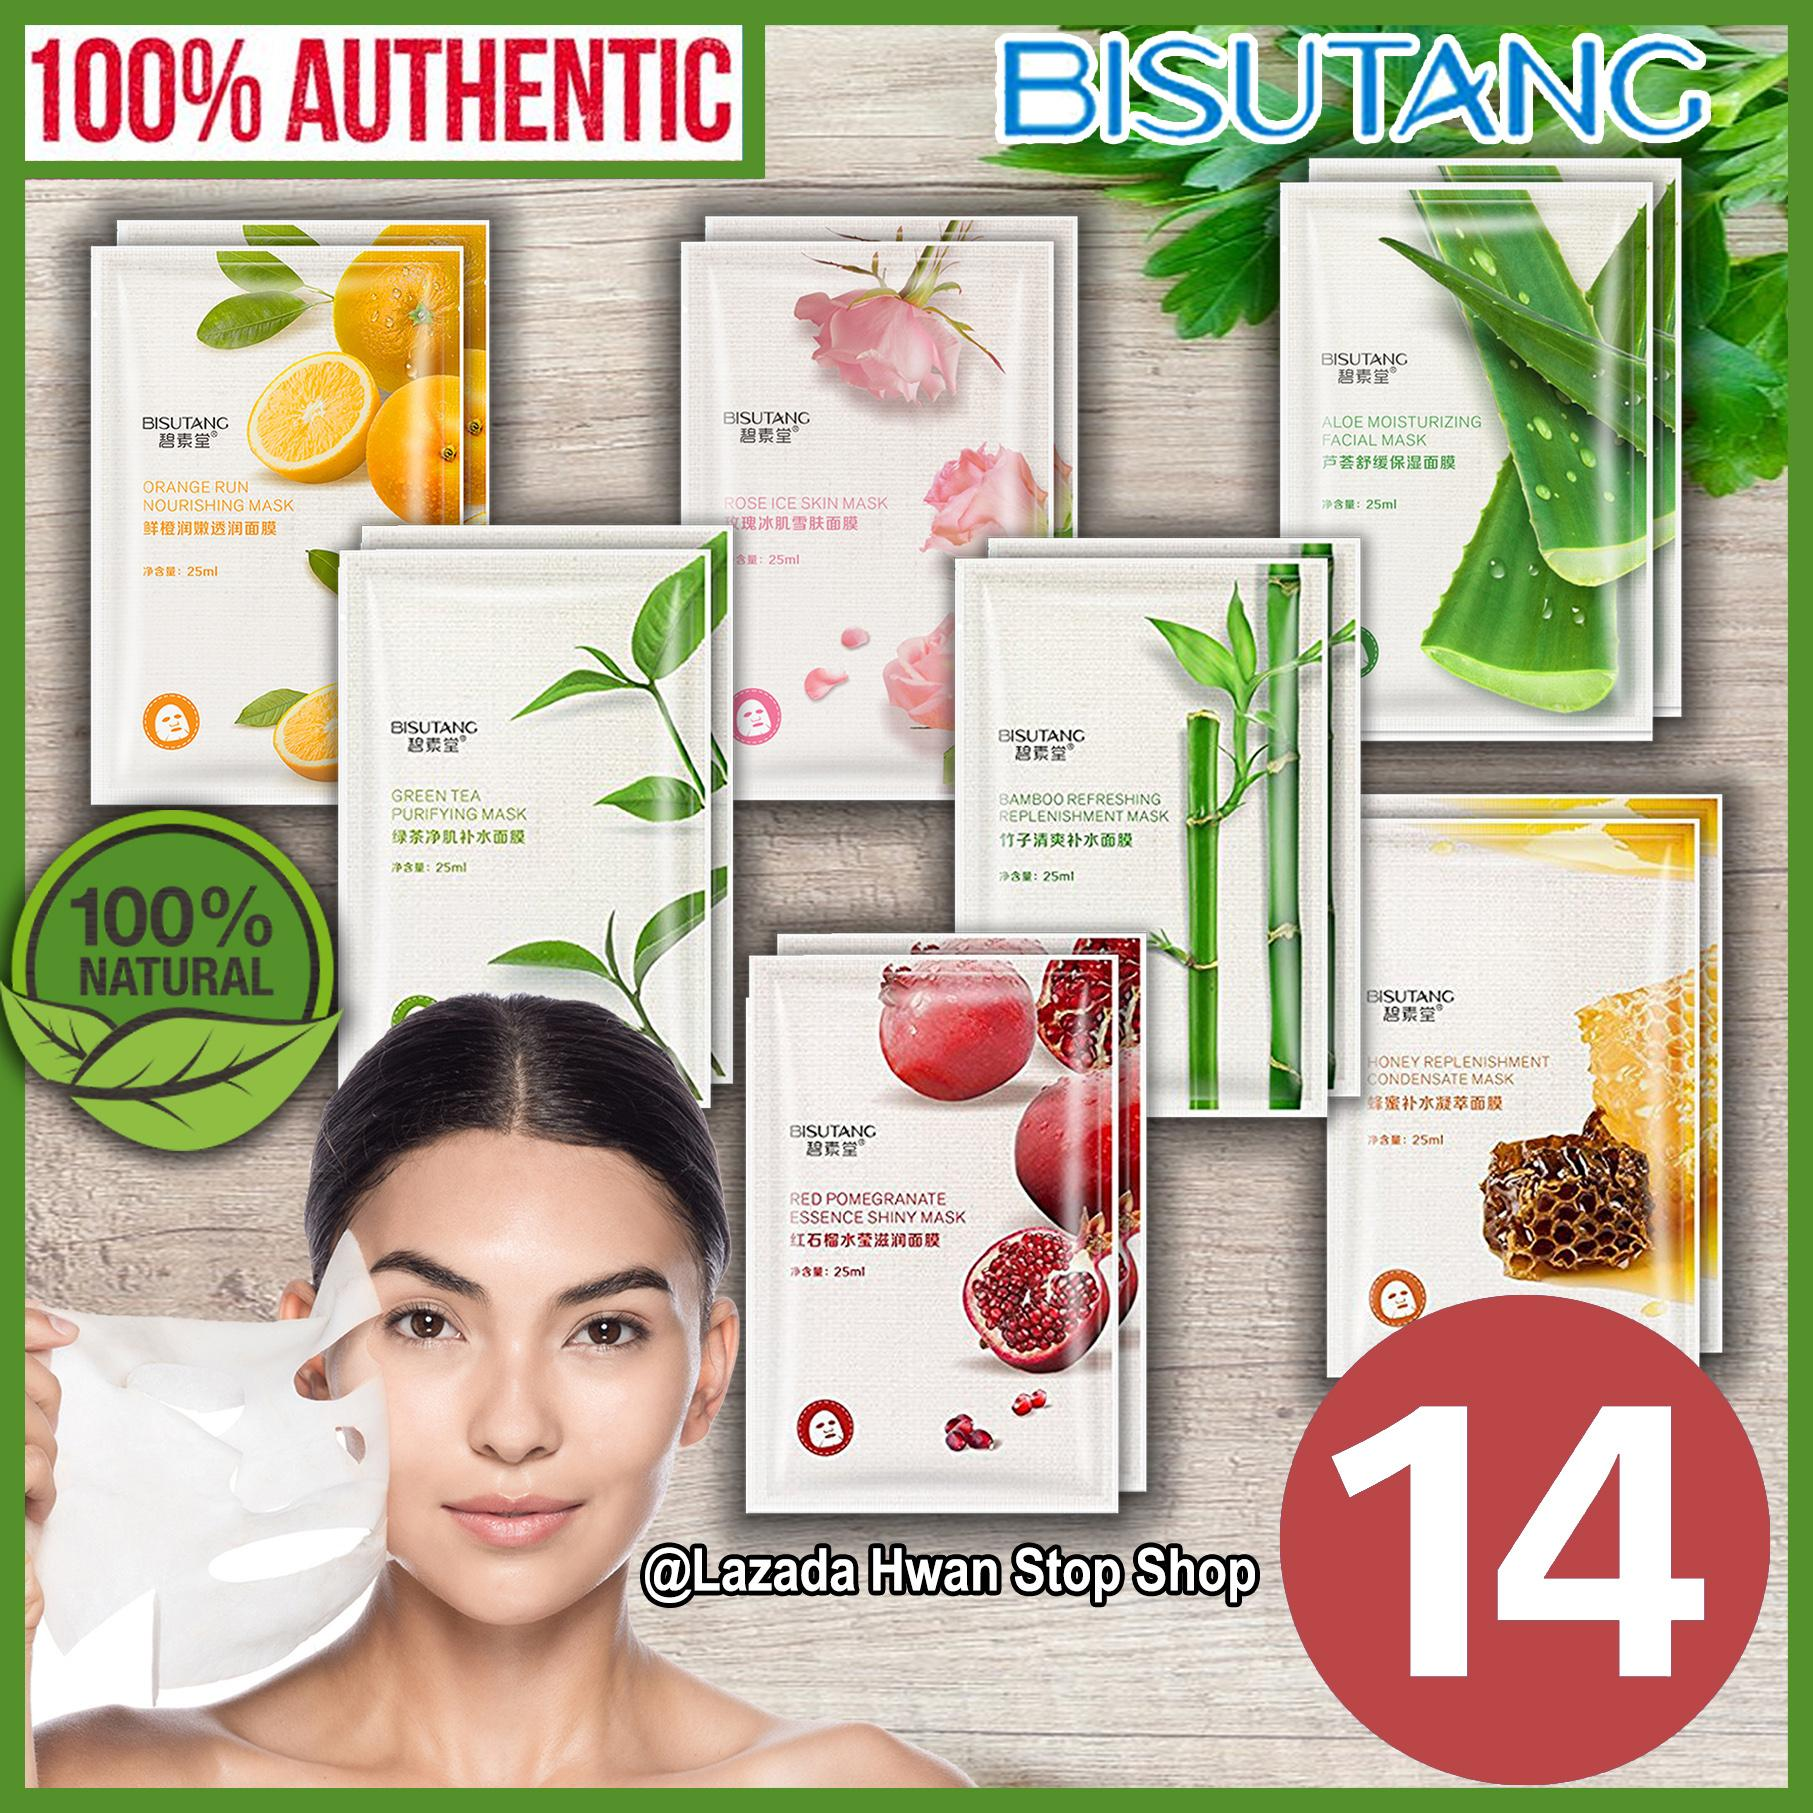 Skincare Mask Brands Skin Face Packs On Sale Prices Set Rorec Natural Care Pomegranate Hydrating Facial Bisutangassorted